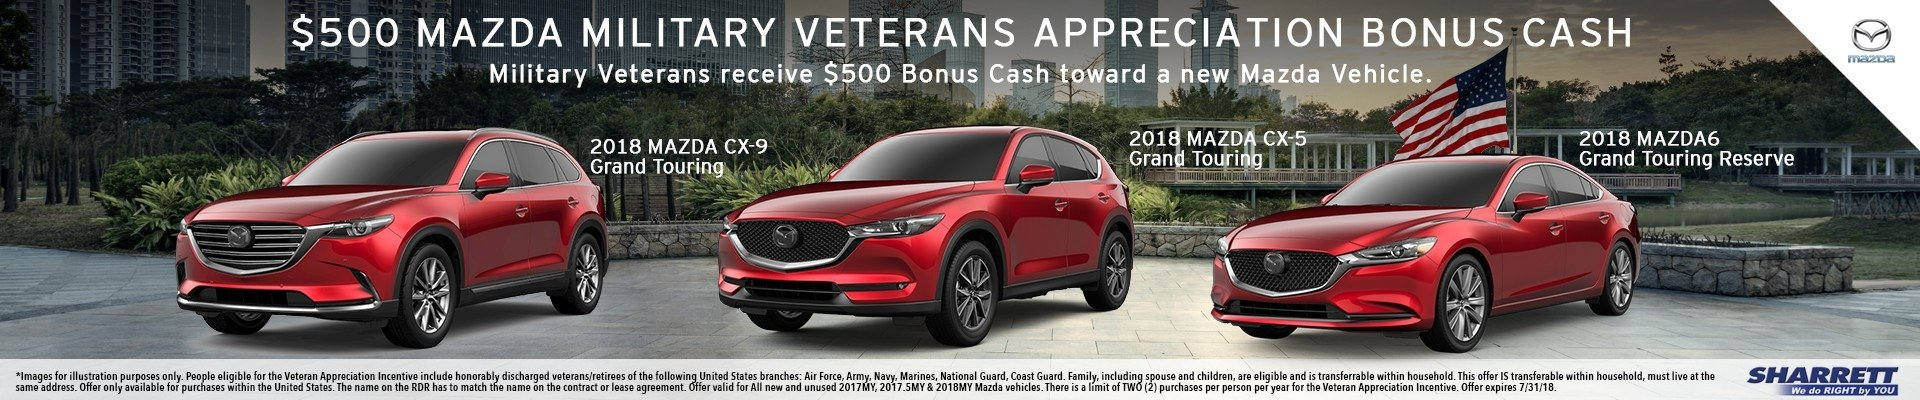 Mazda Military Veterans Appreciation